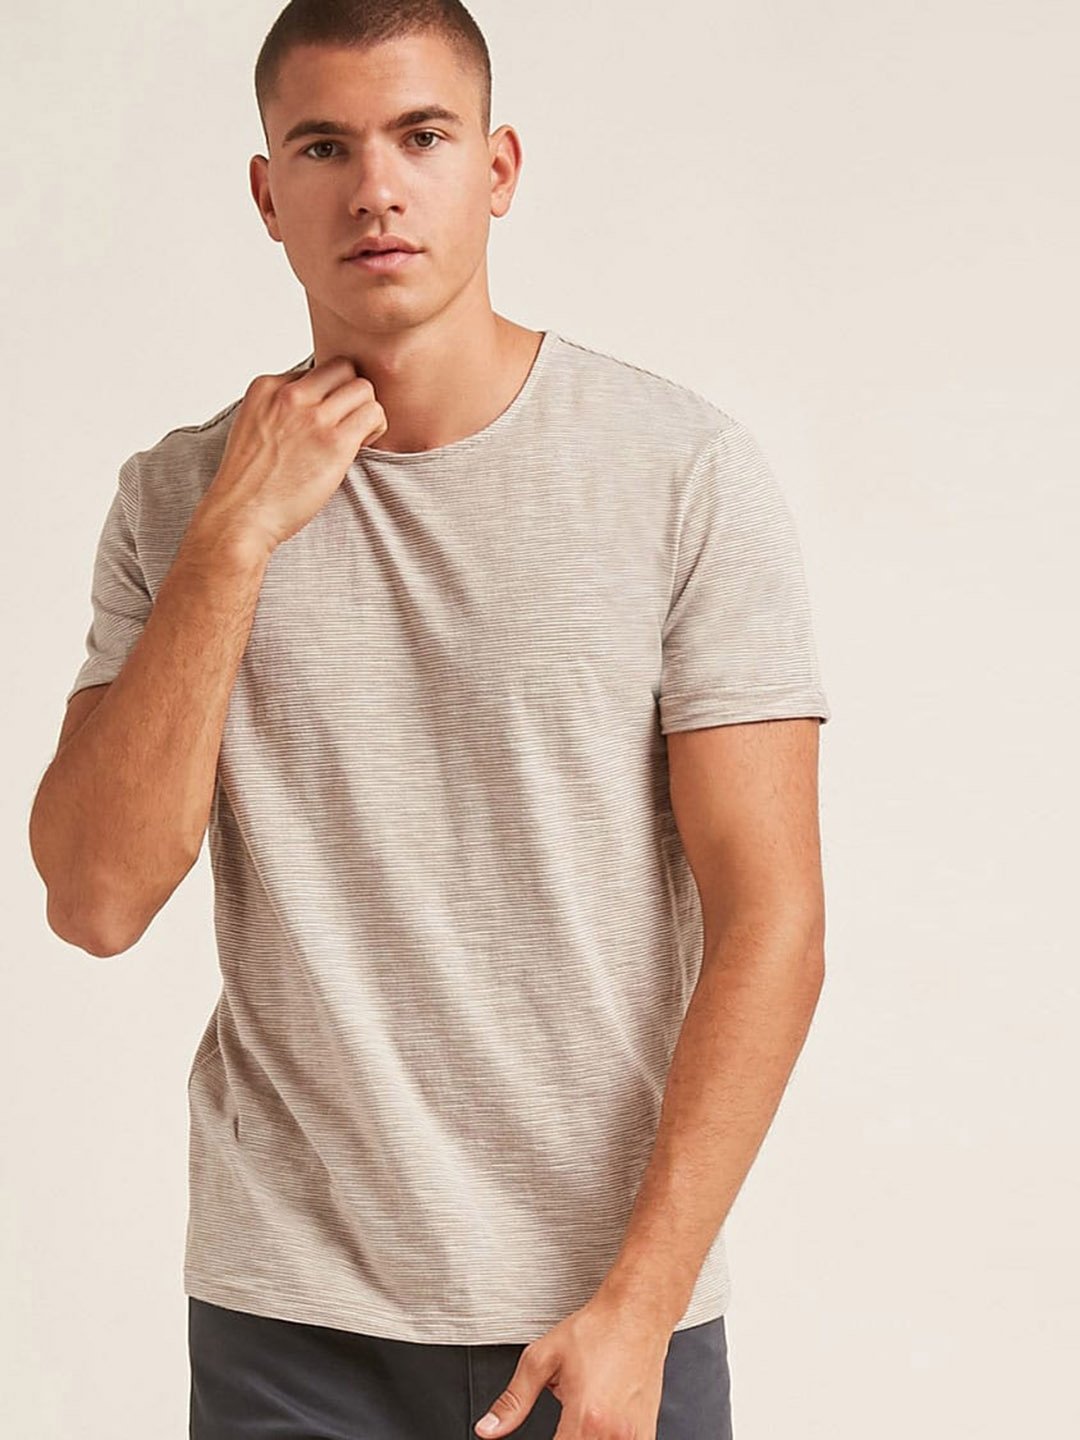 1ab40c175823 Buy FOREVER 21 Men Taupe & Off White Striped Round Neck T Shirt ...